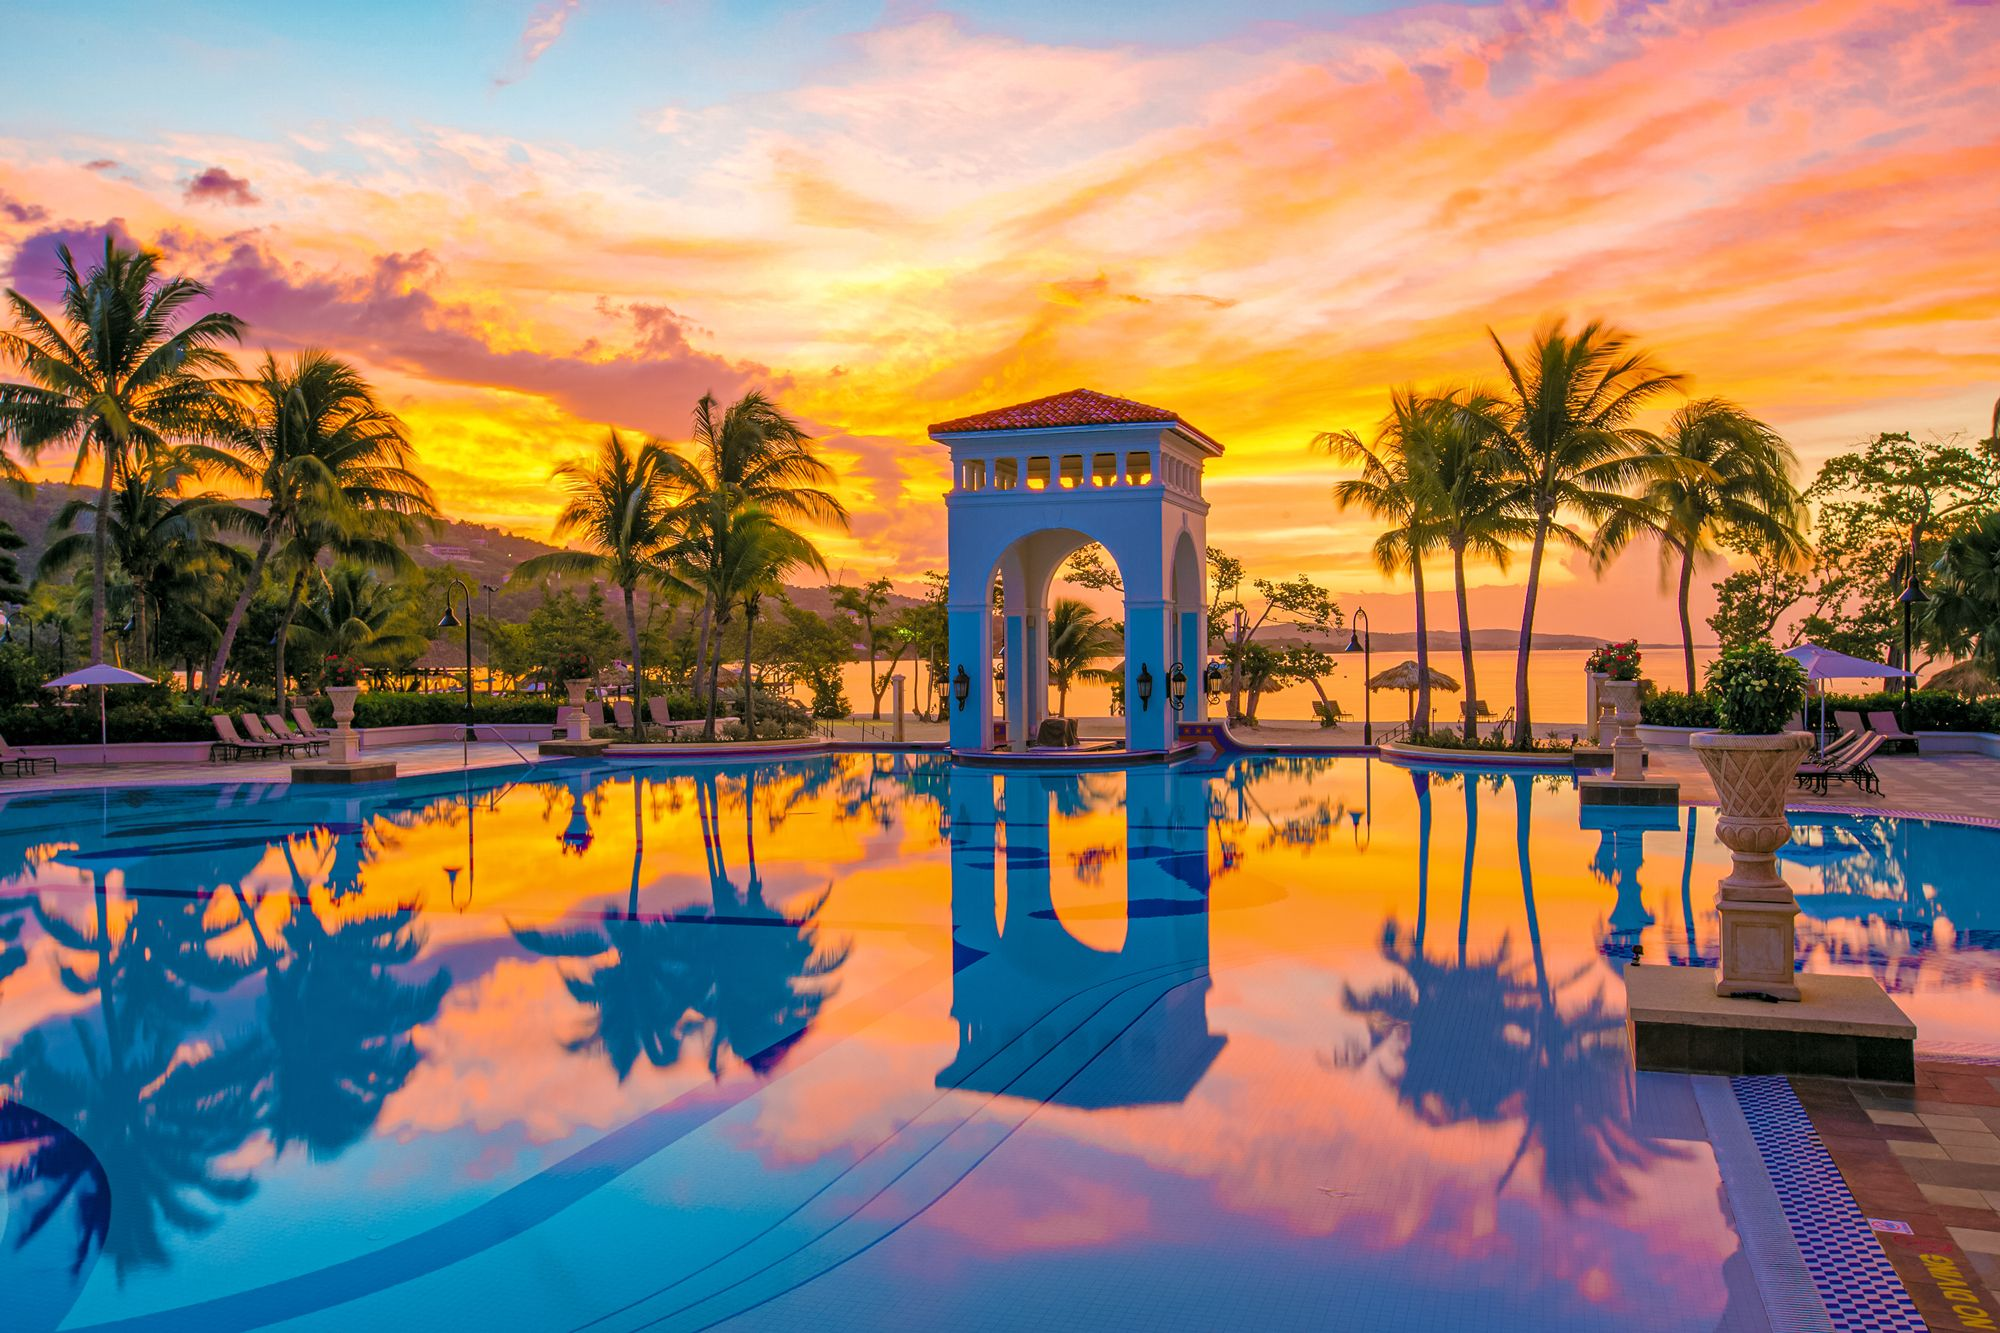 Sandals South Coast Jamaica Sunrise Main Pool